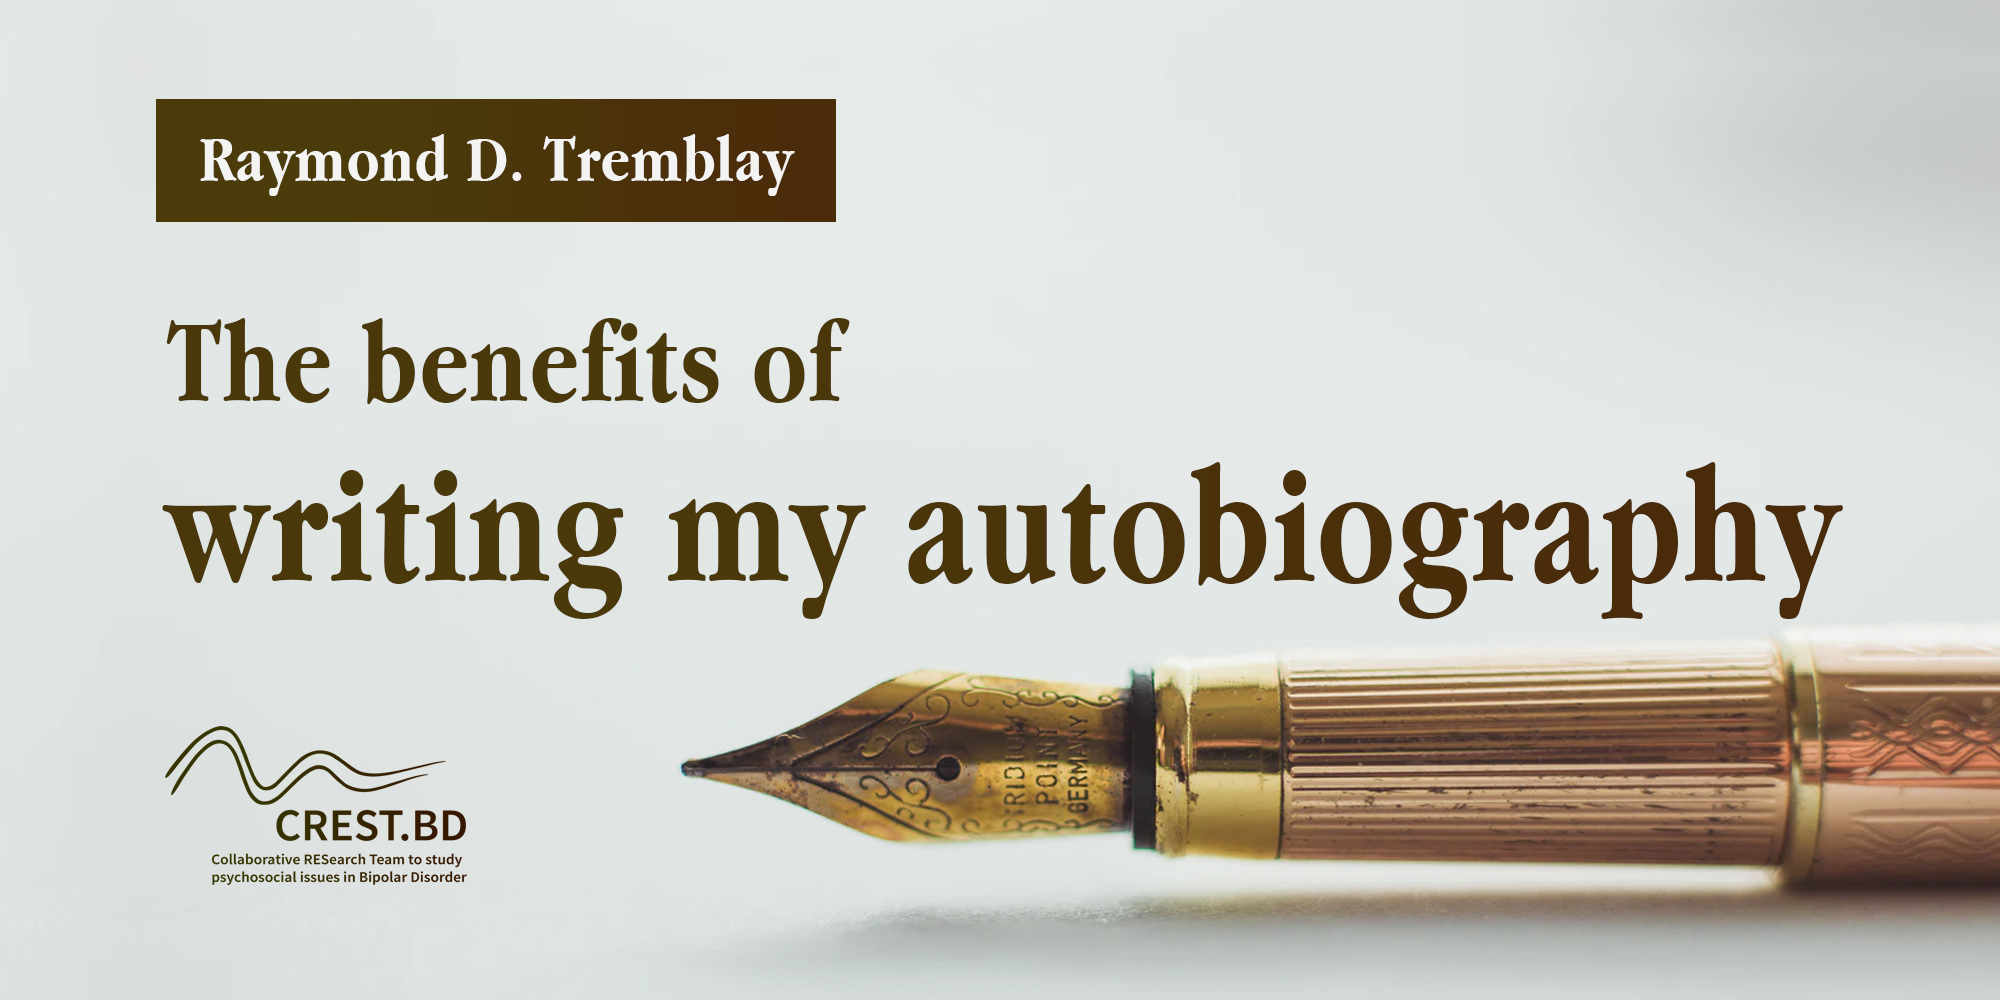 The Benefits of Writing my Autobiography